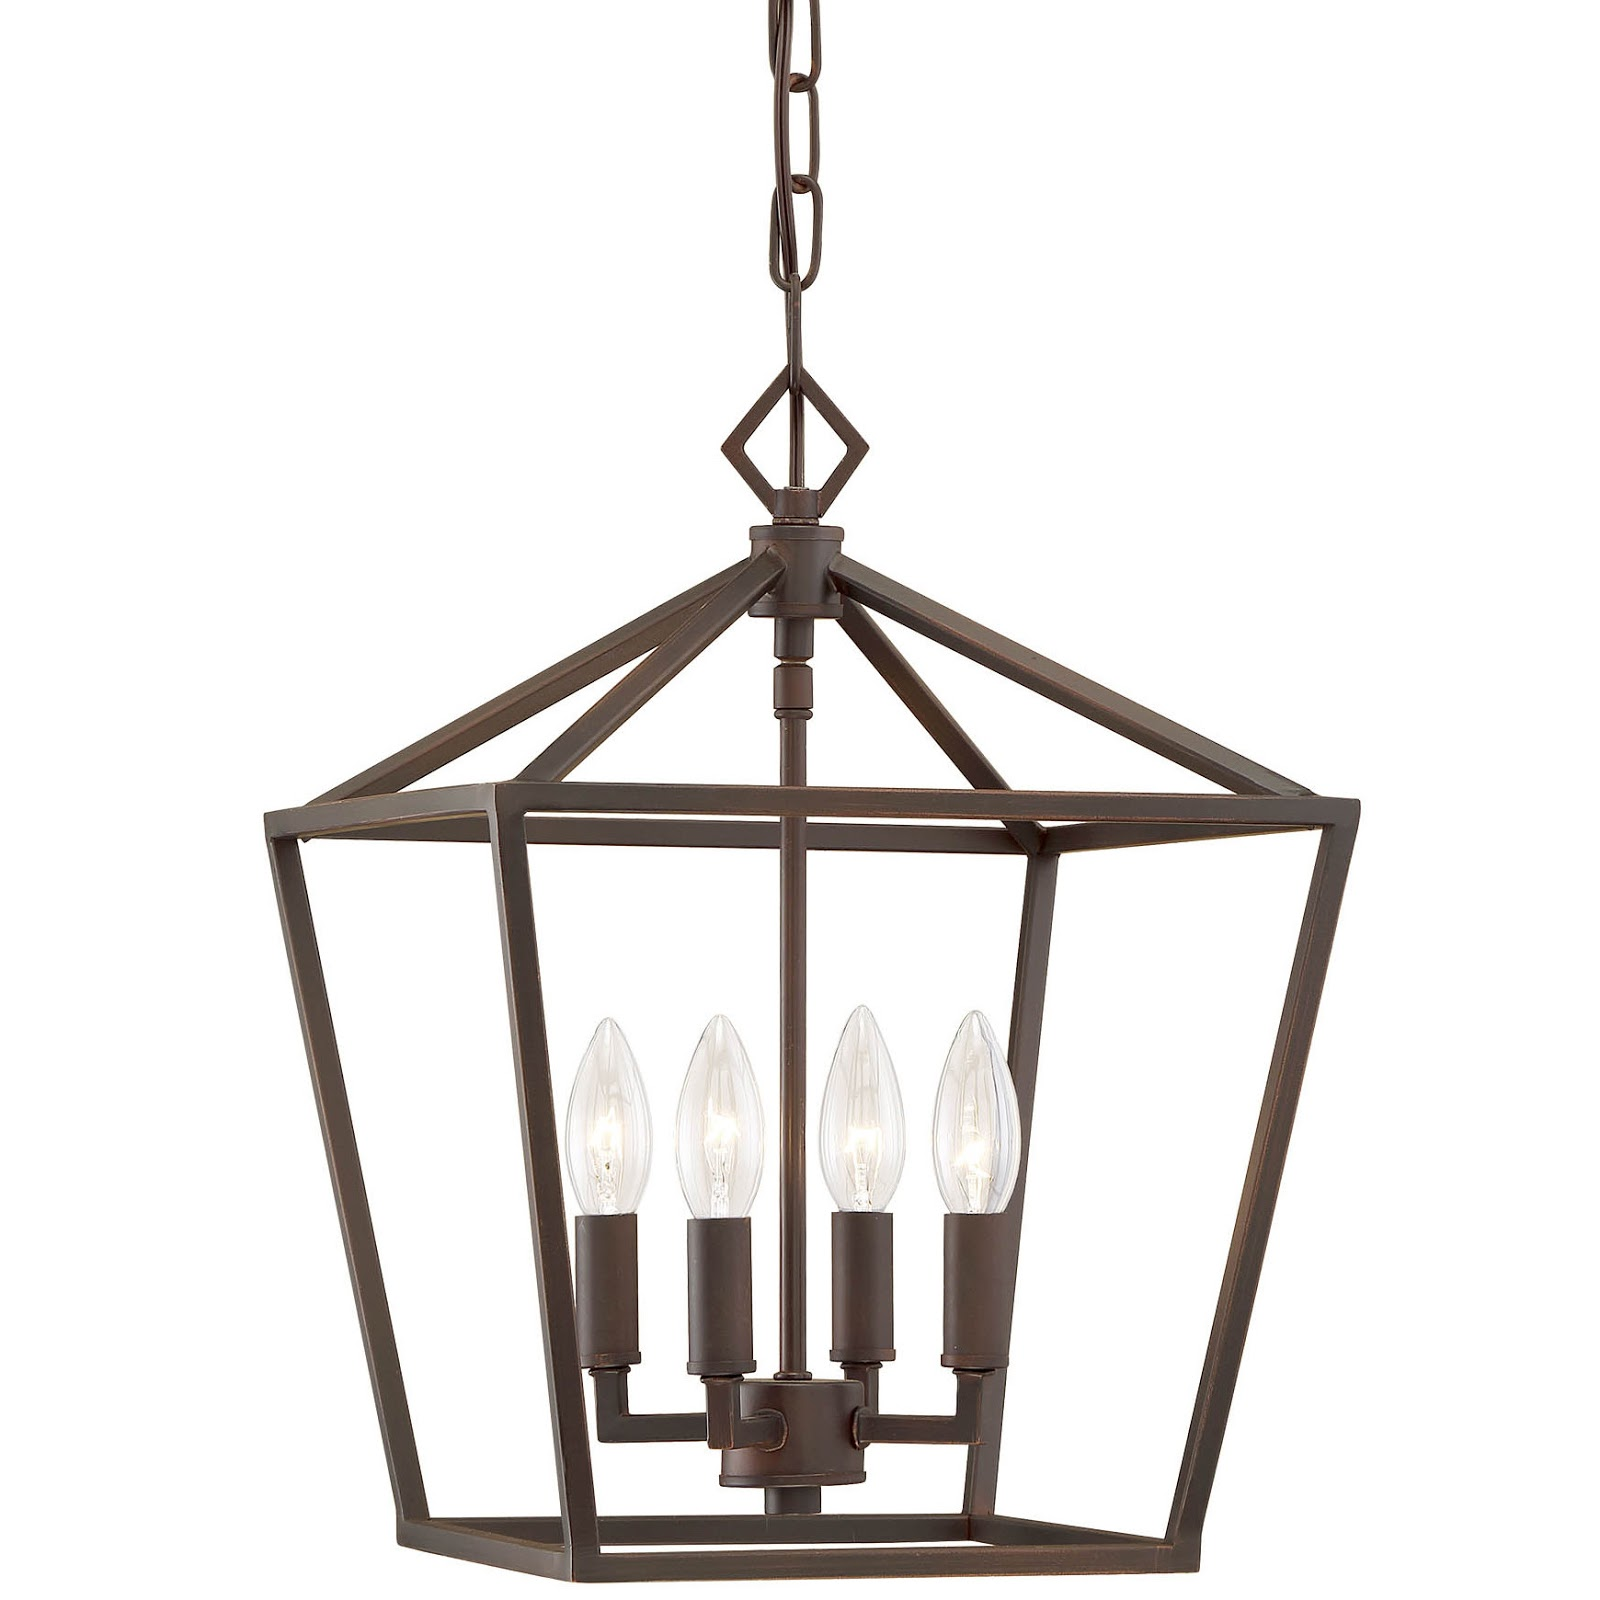 Classic tapered candle chandelier